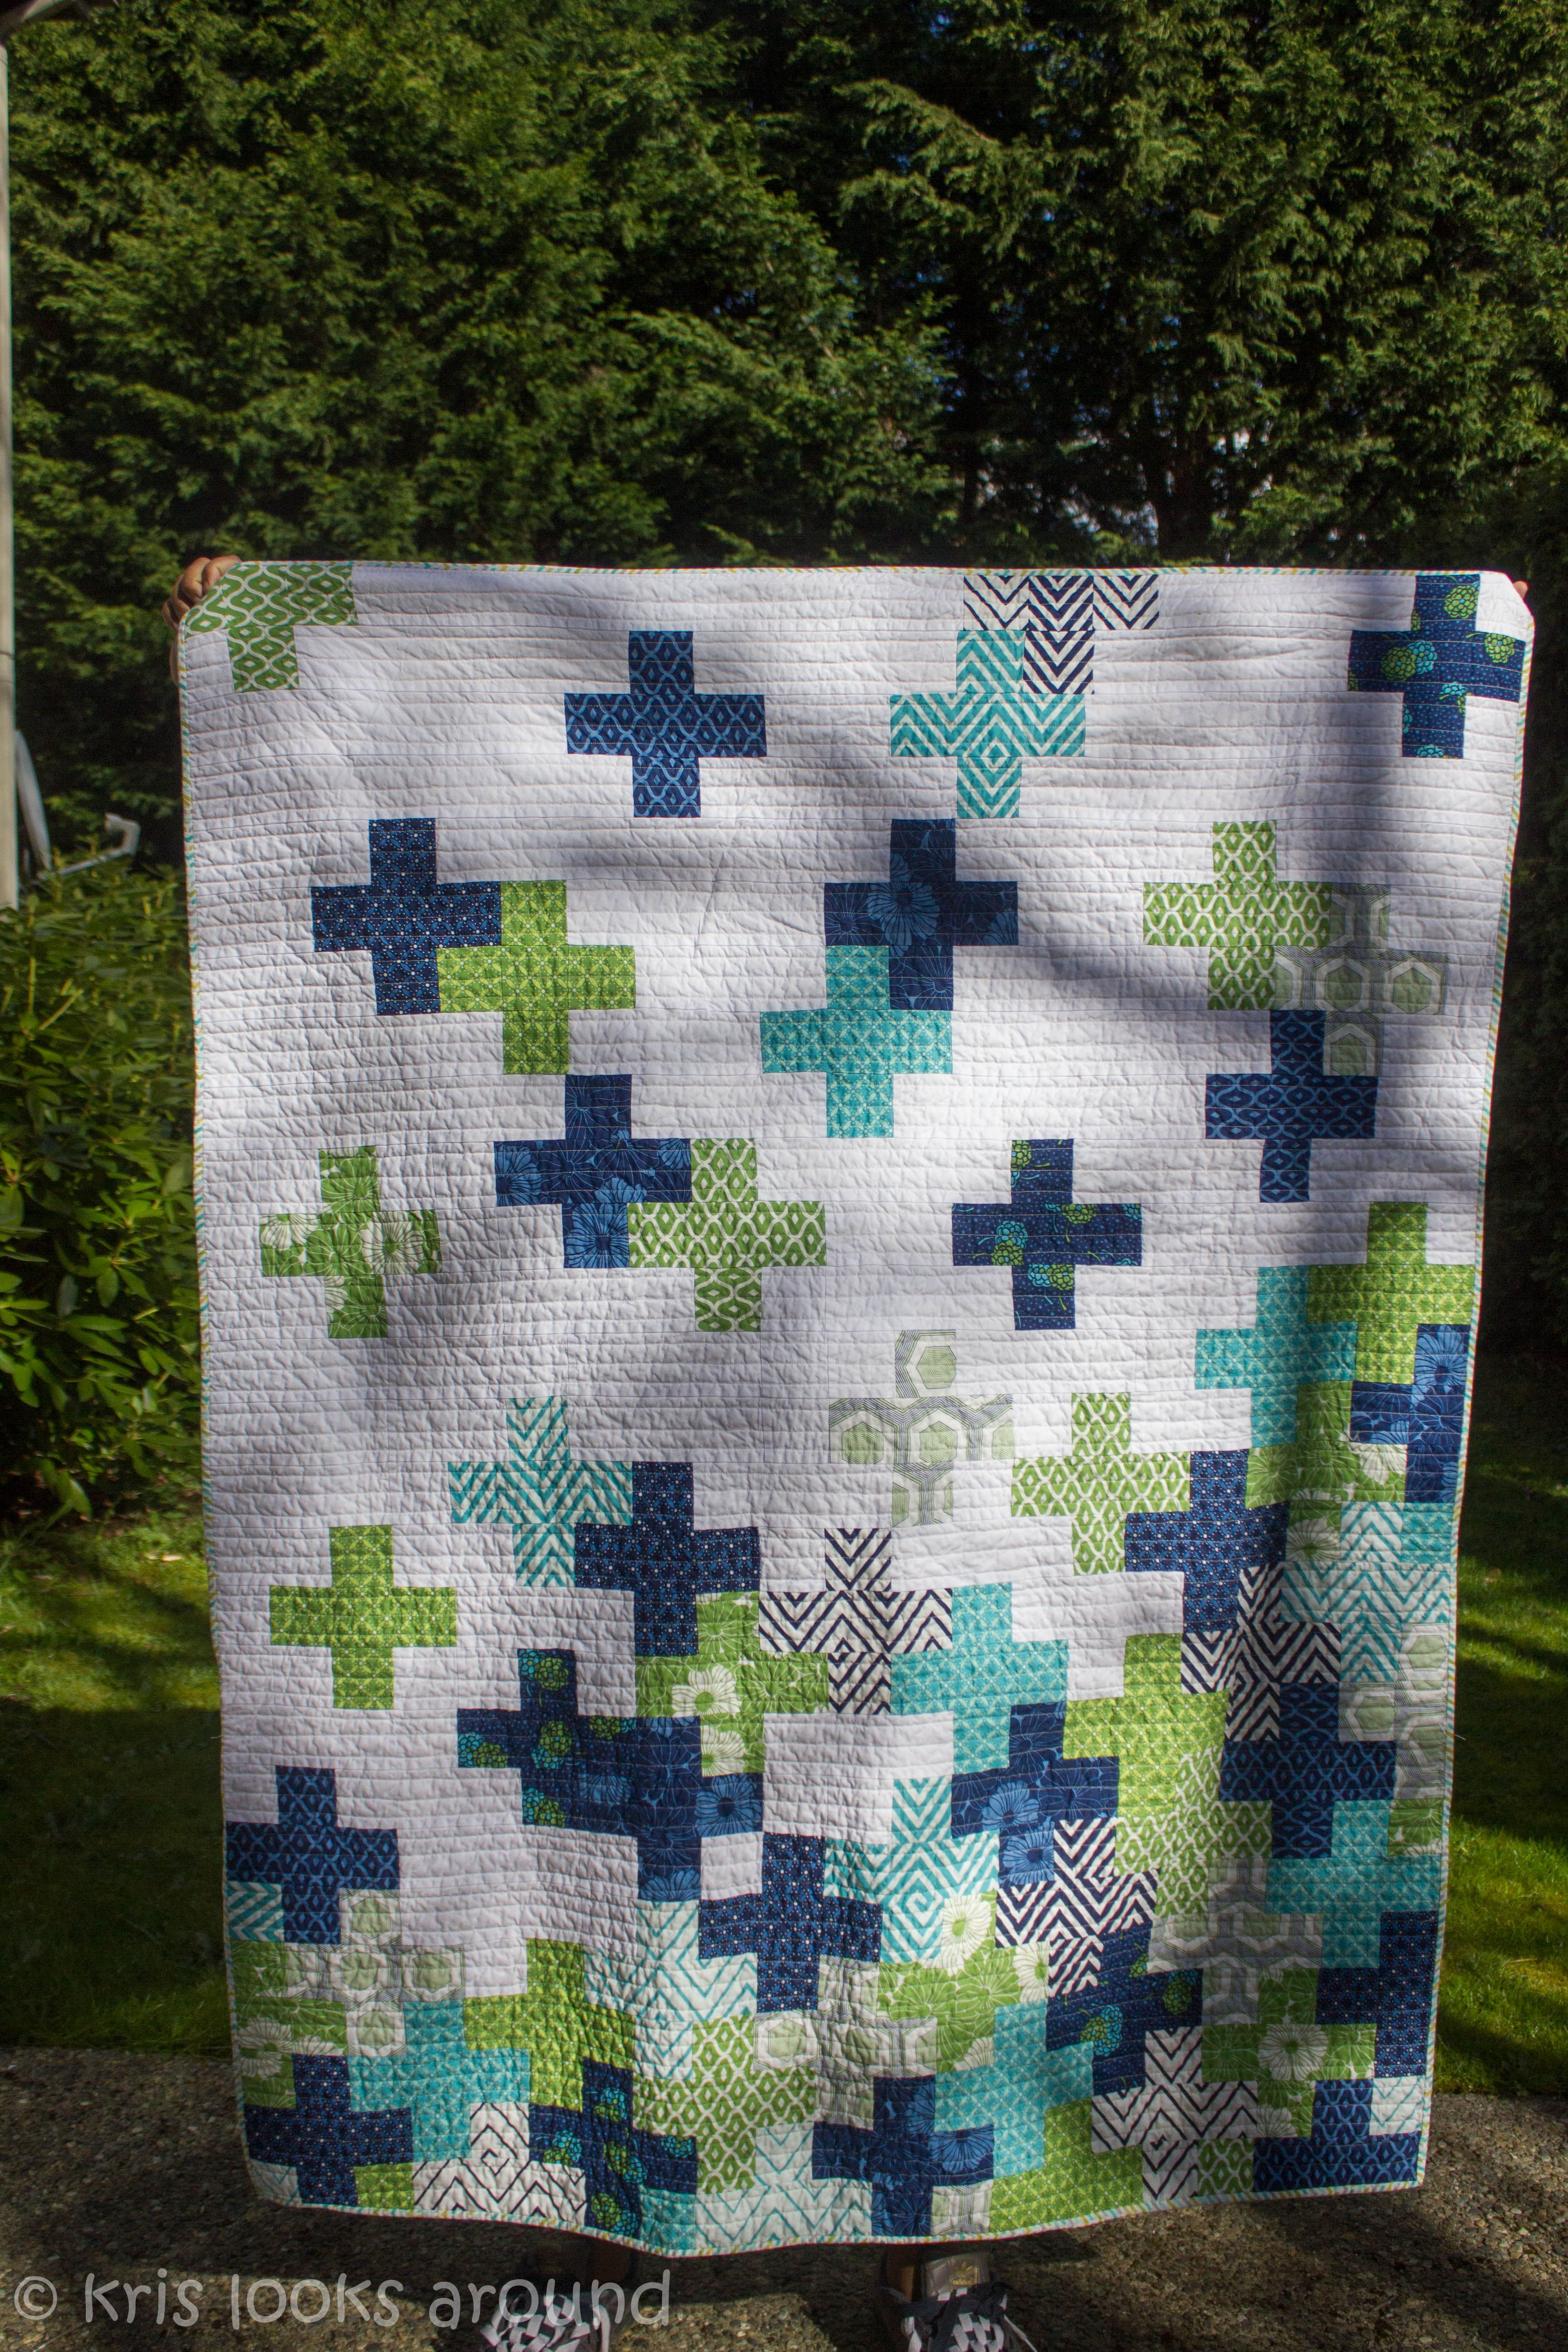 The Plus Quilt | Birthdays, Patchwork and Cross quilt : plus quilts - Adamdwight.com